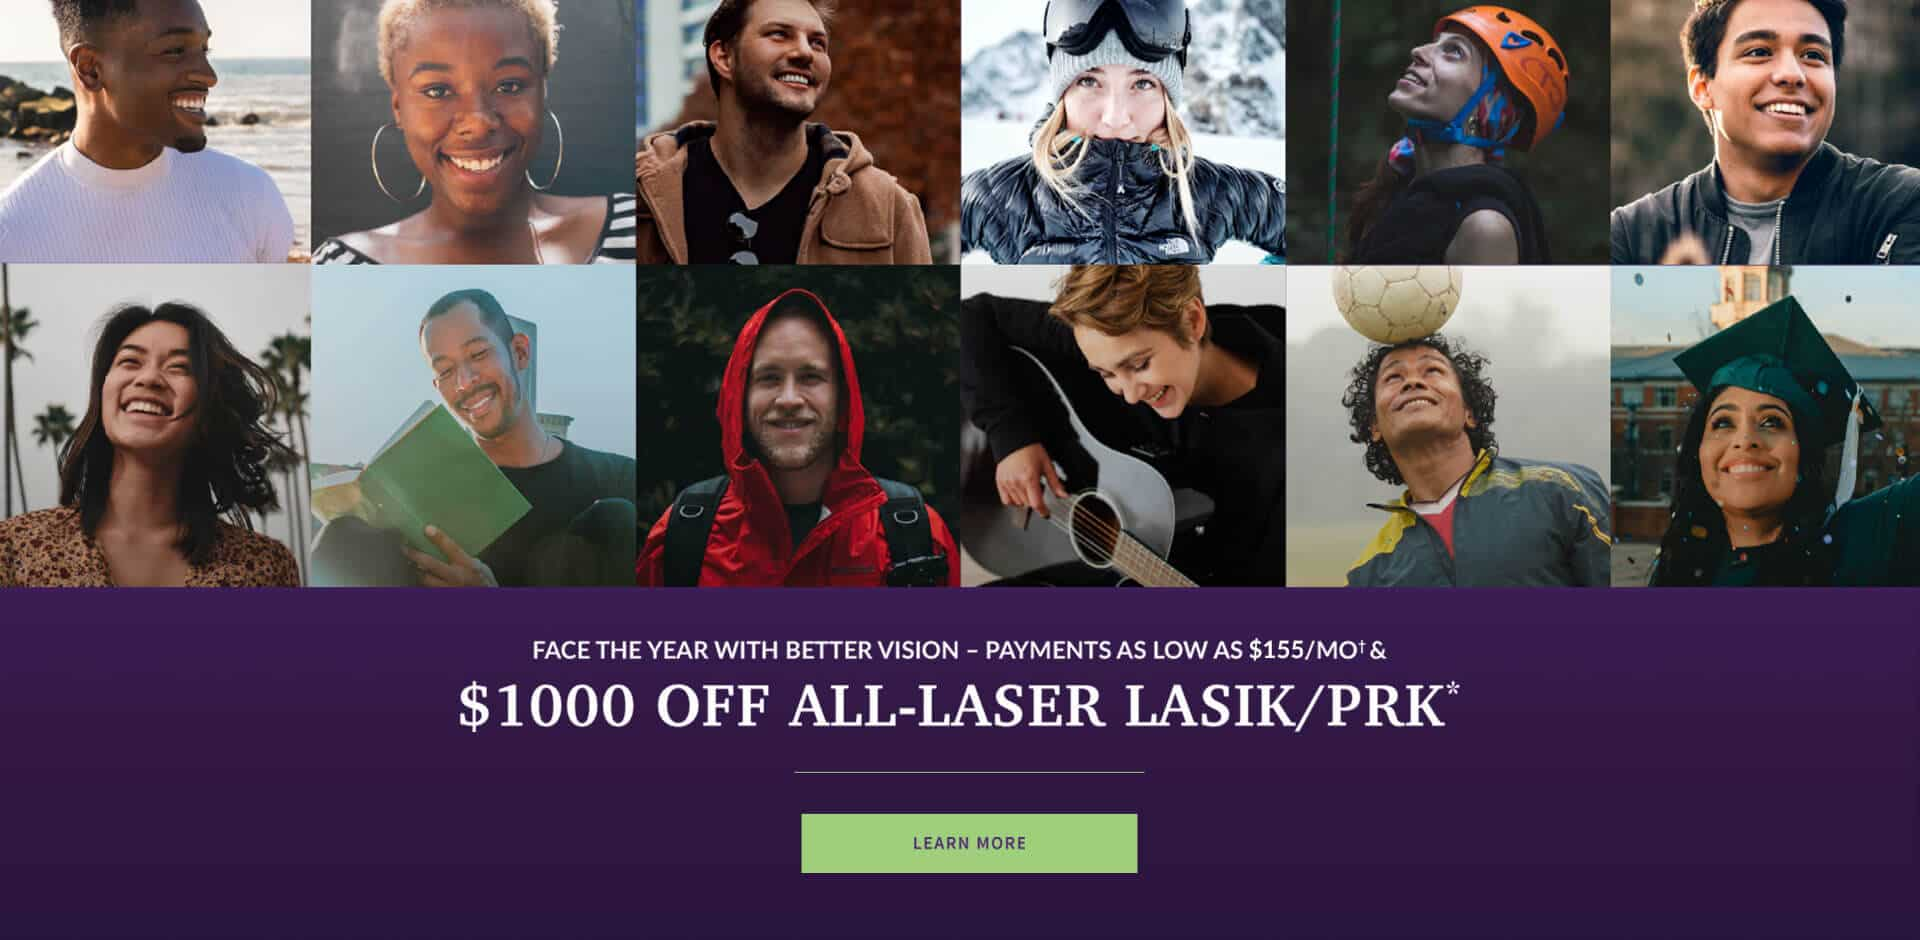 Face the year with better vision - payments as low as $100/MO& - $1000 off All-Laser LASIK/PRK